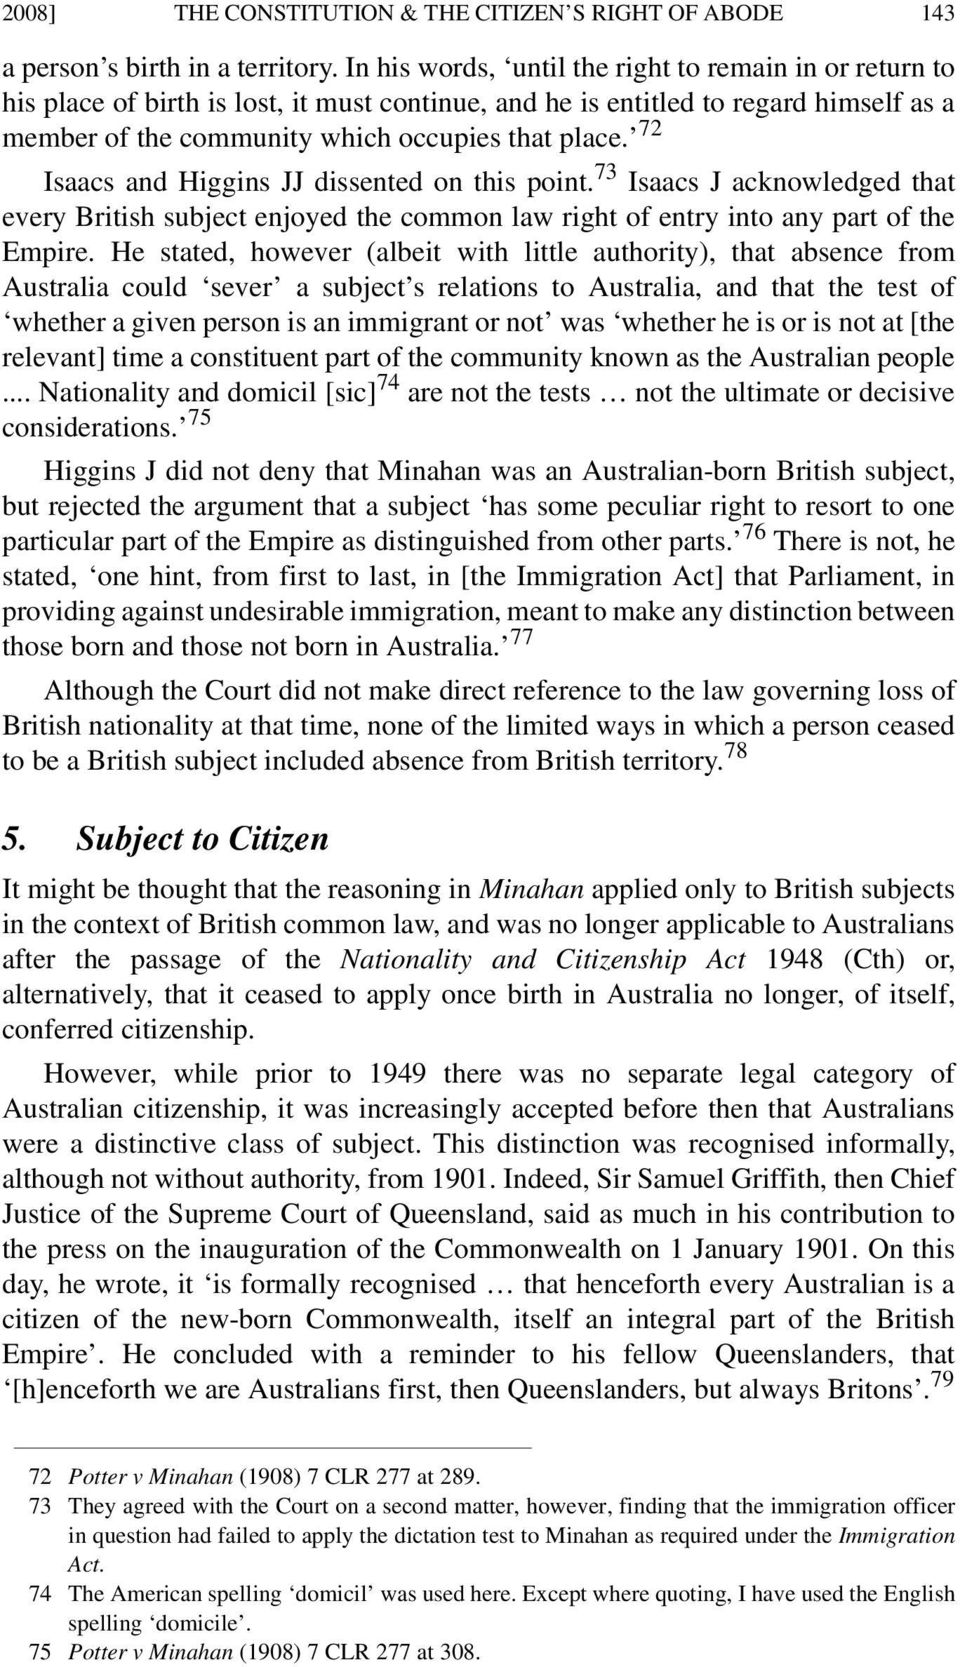 72 Isaacs and Higgins JJ dissented on this point. 73 Isaacs J acknowledged that every British subject enjoyed the common law right of entry into any part of the Empire.